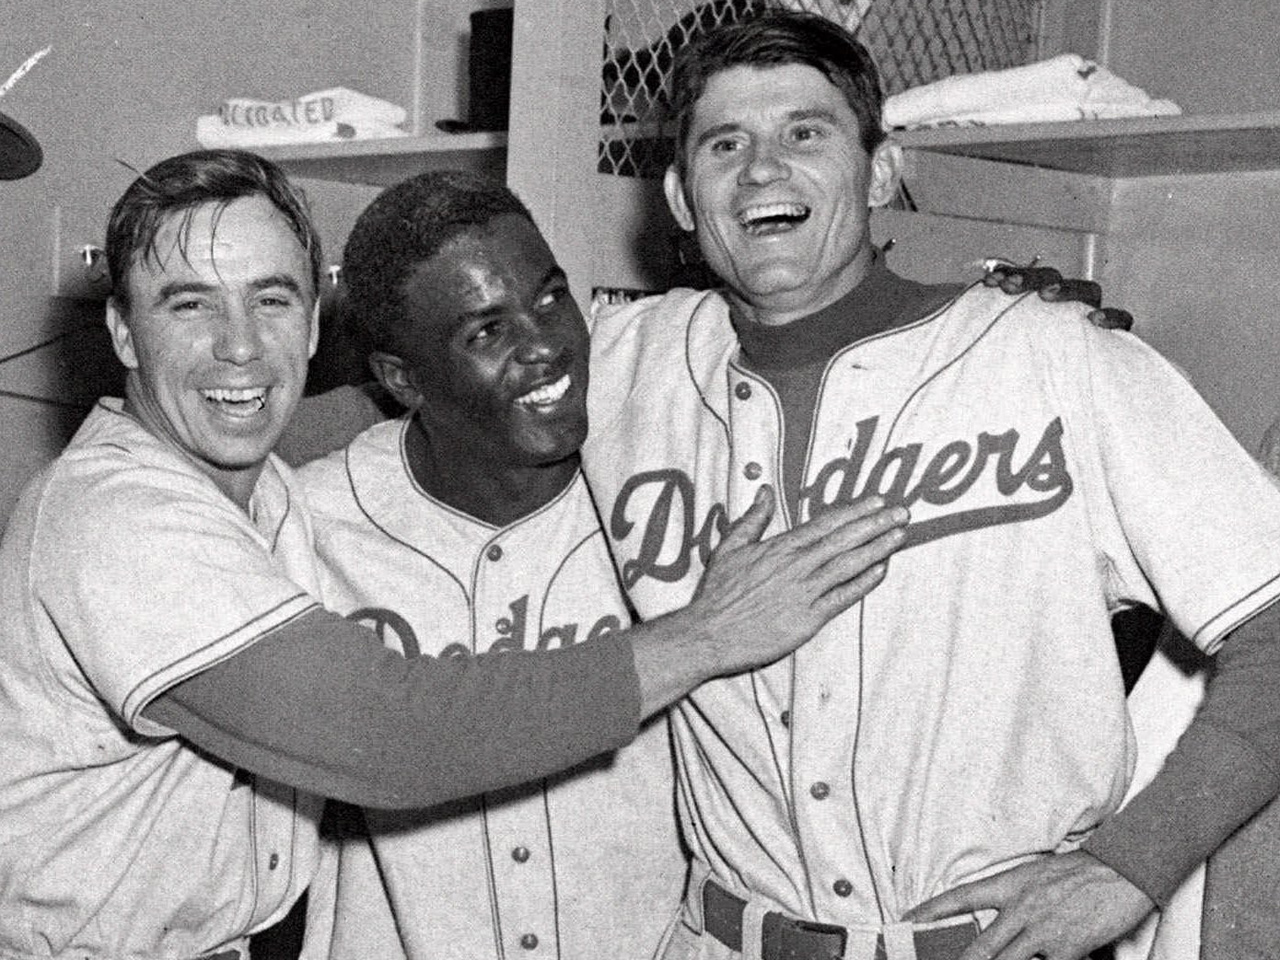 an introduction to the life of jackie roosevelt robinson in major league baseball The united states jackie roosevelt robinson was the first black man to play in modern major league baseball (music) voice one: after world war two, many americans.